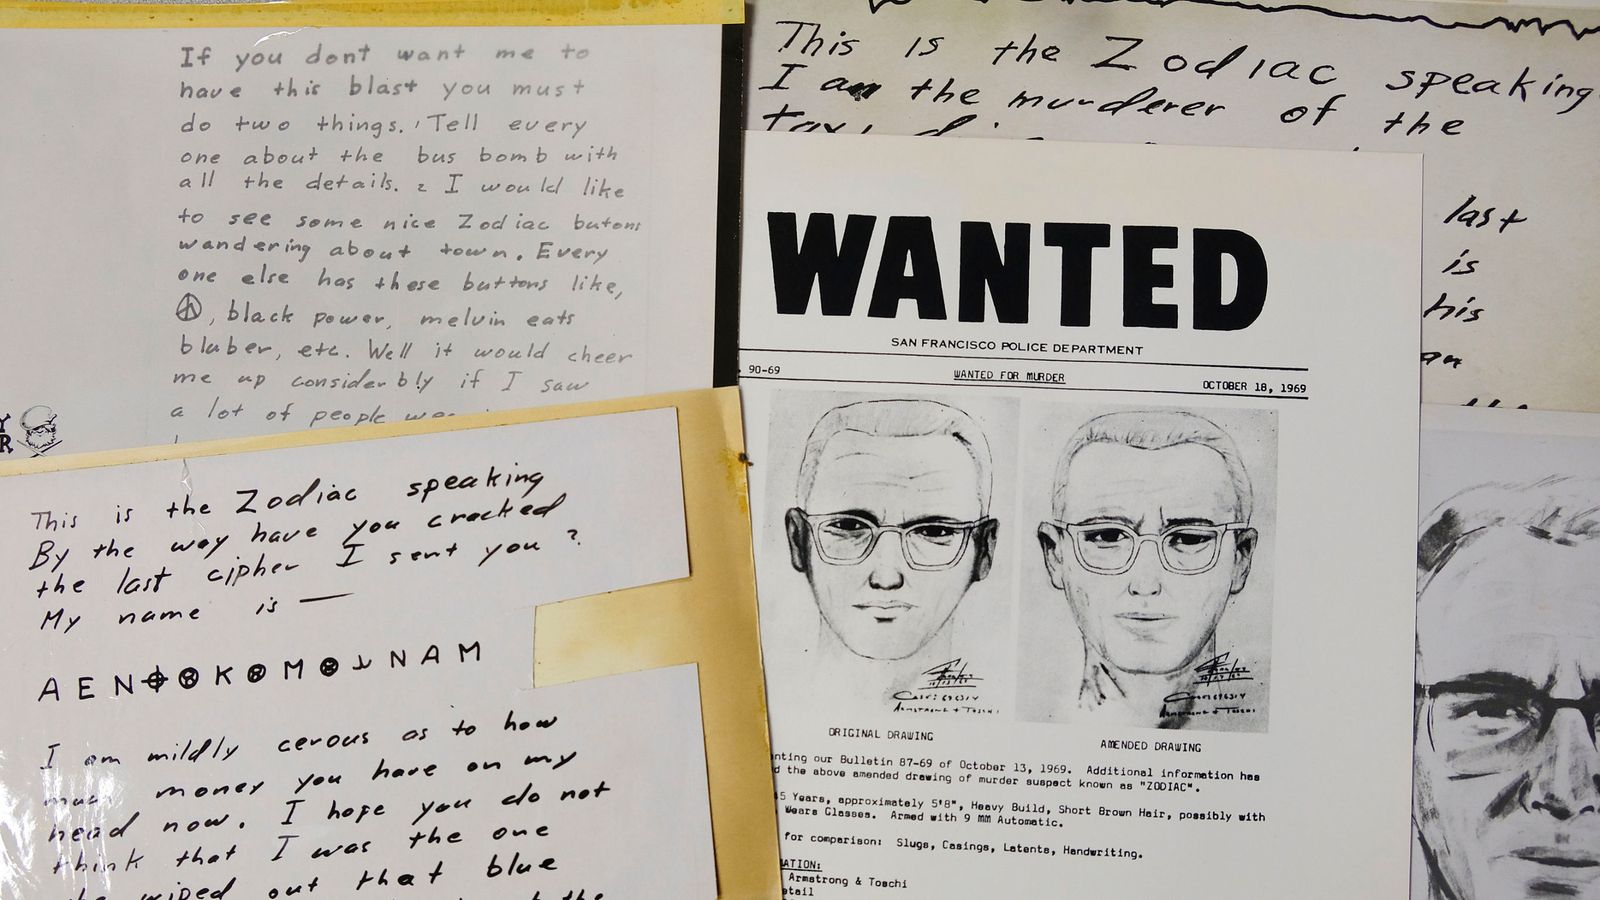 Infamous Zodiac Killer 'Cracked' Message 'Cracked' After More Than 50 Years |  US News